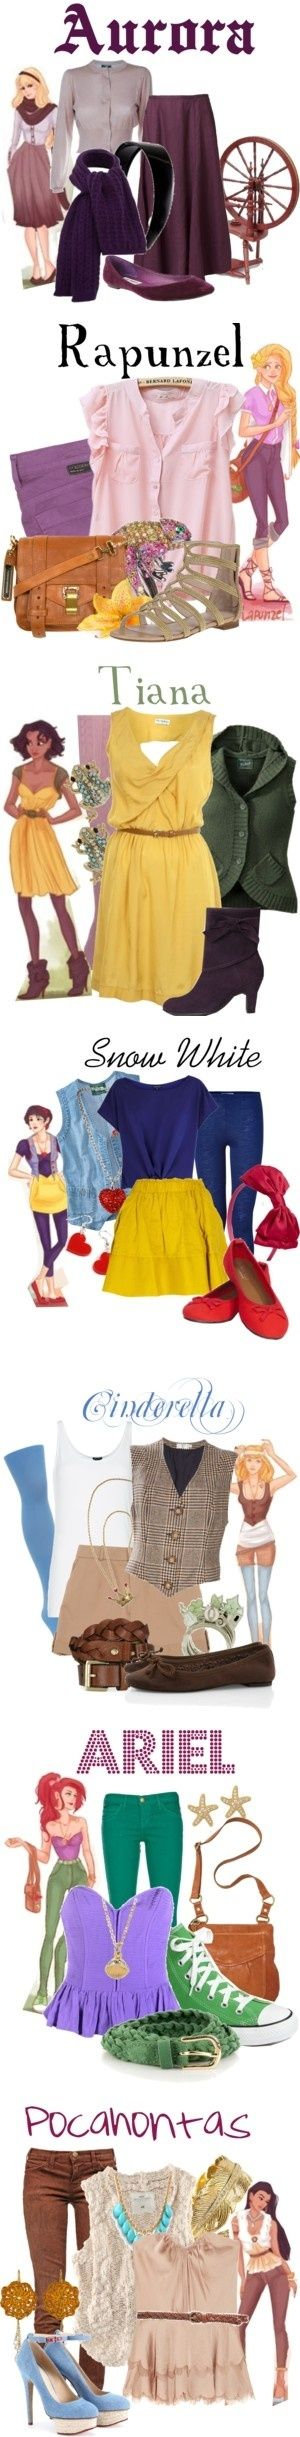 """Hipster Disney Princess Collection"" by Kendra_367"